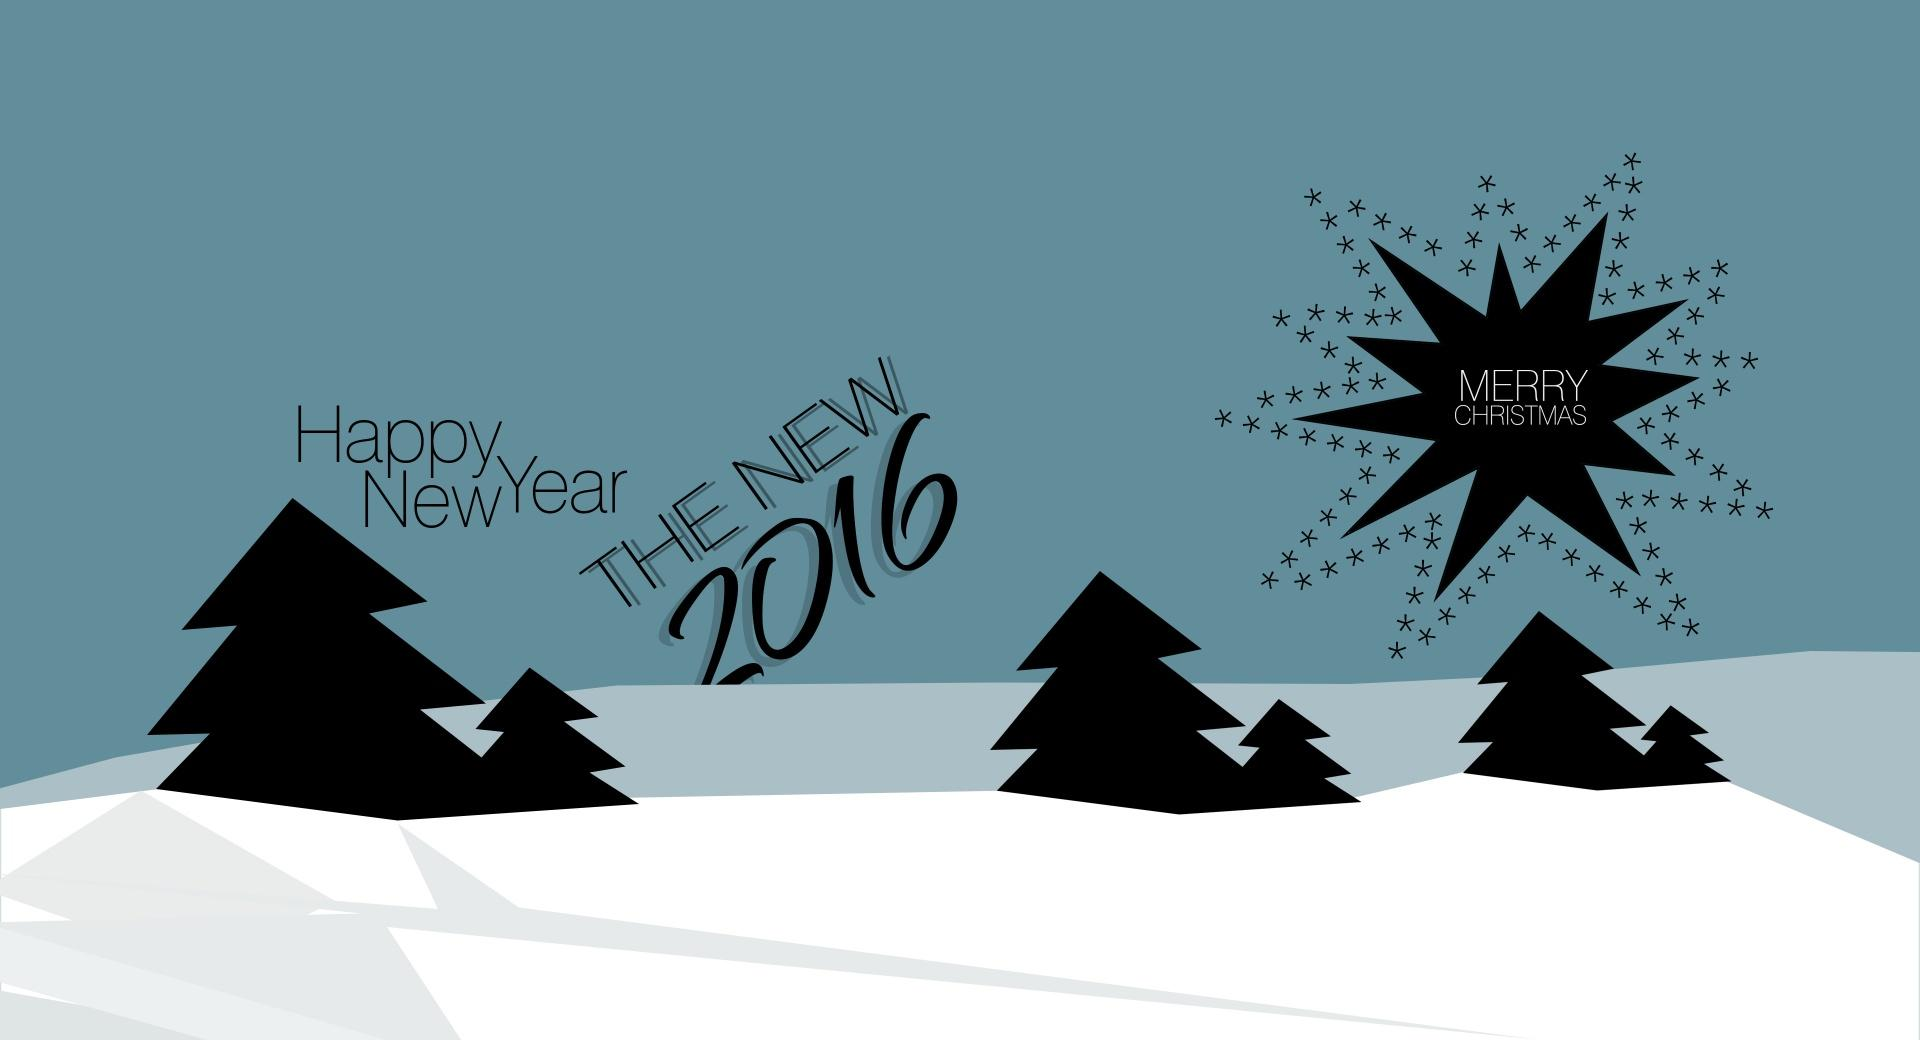 MERRY Christmas and Happy New Year 2016 wallpapers HD quality